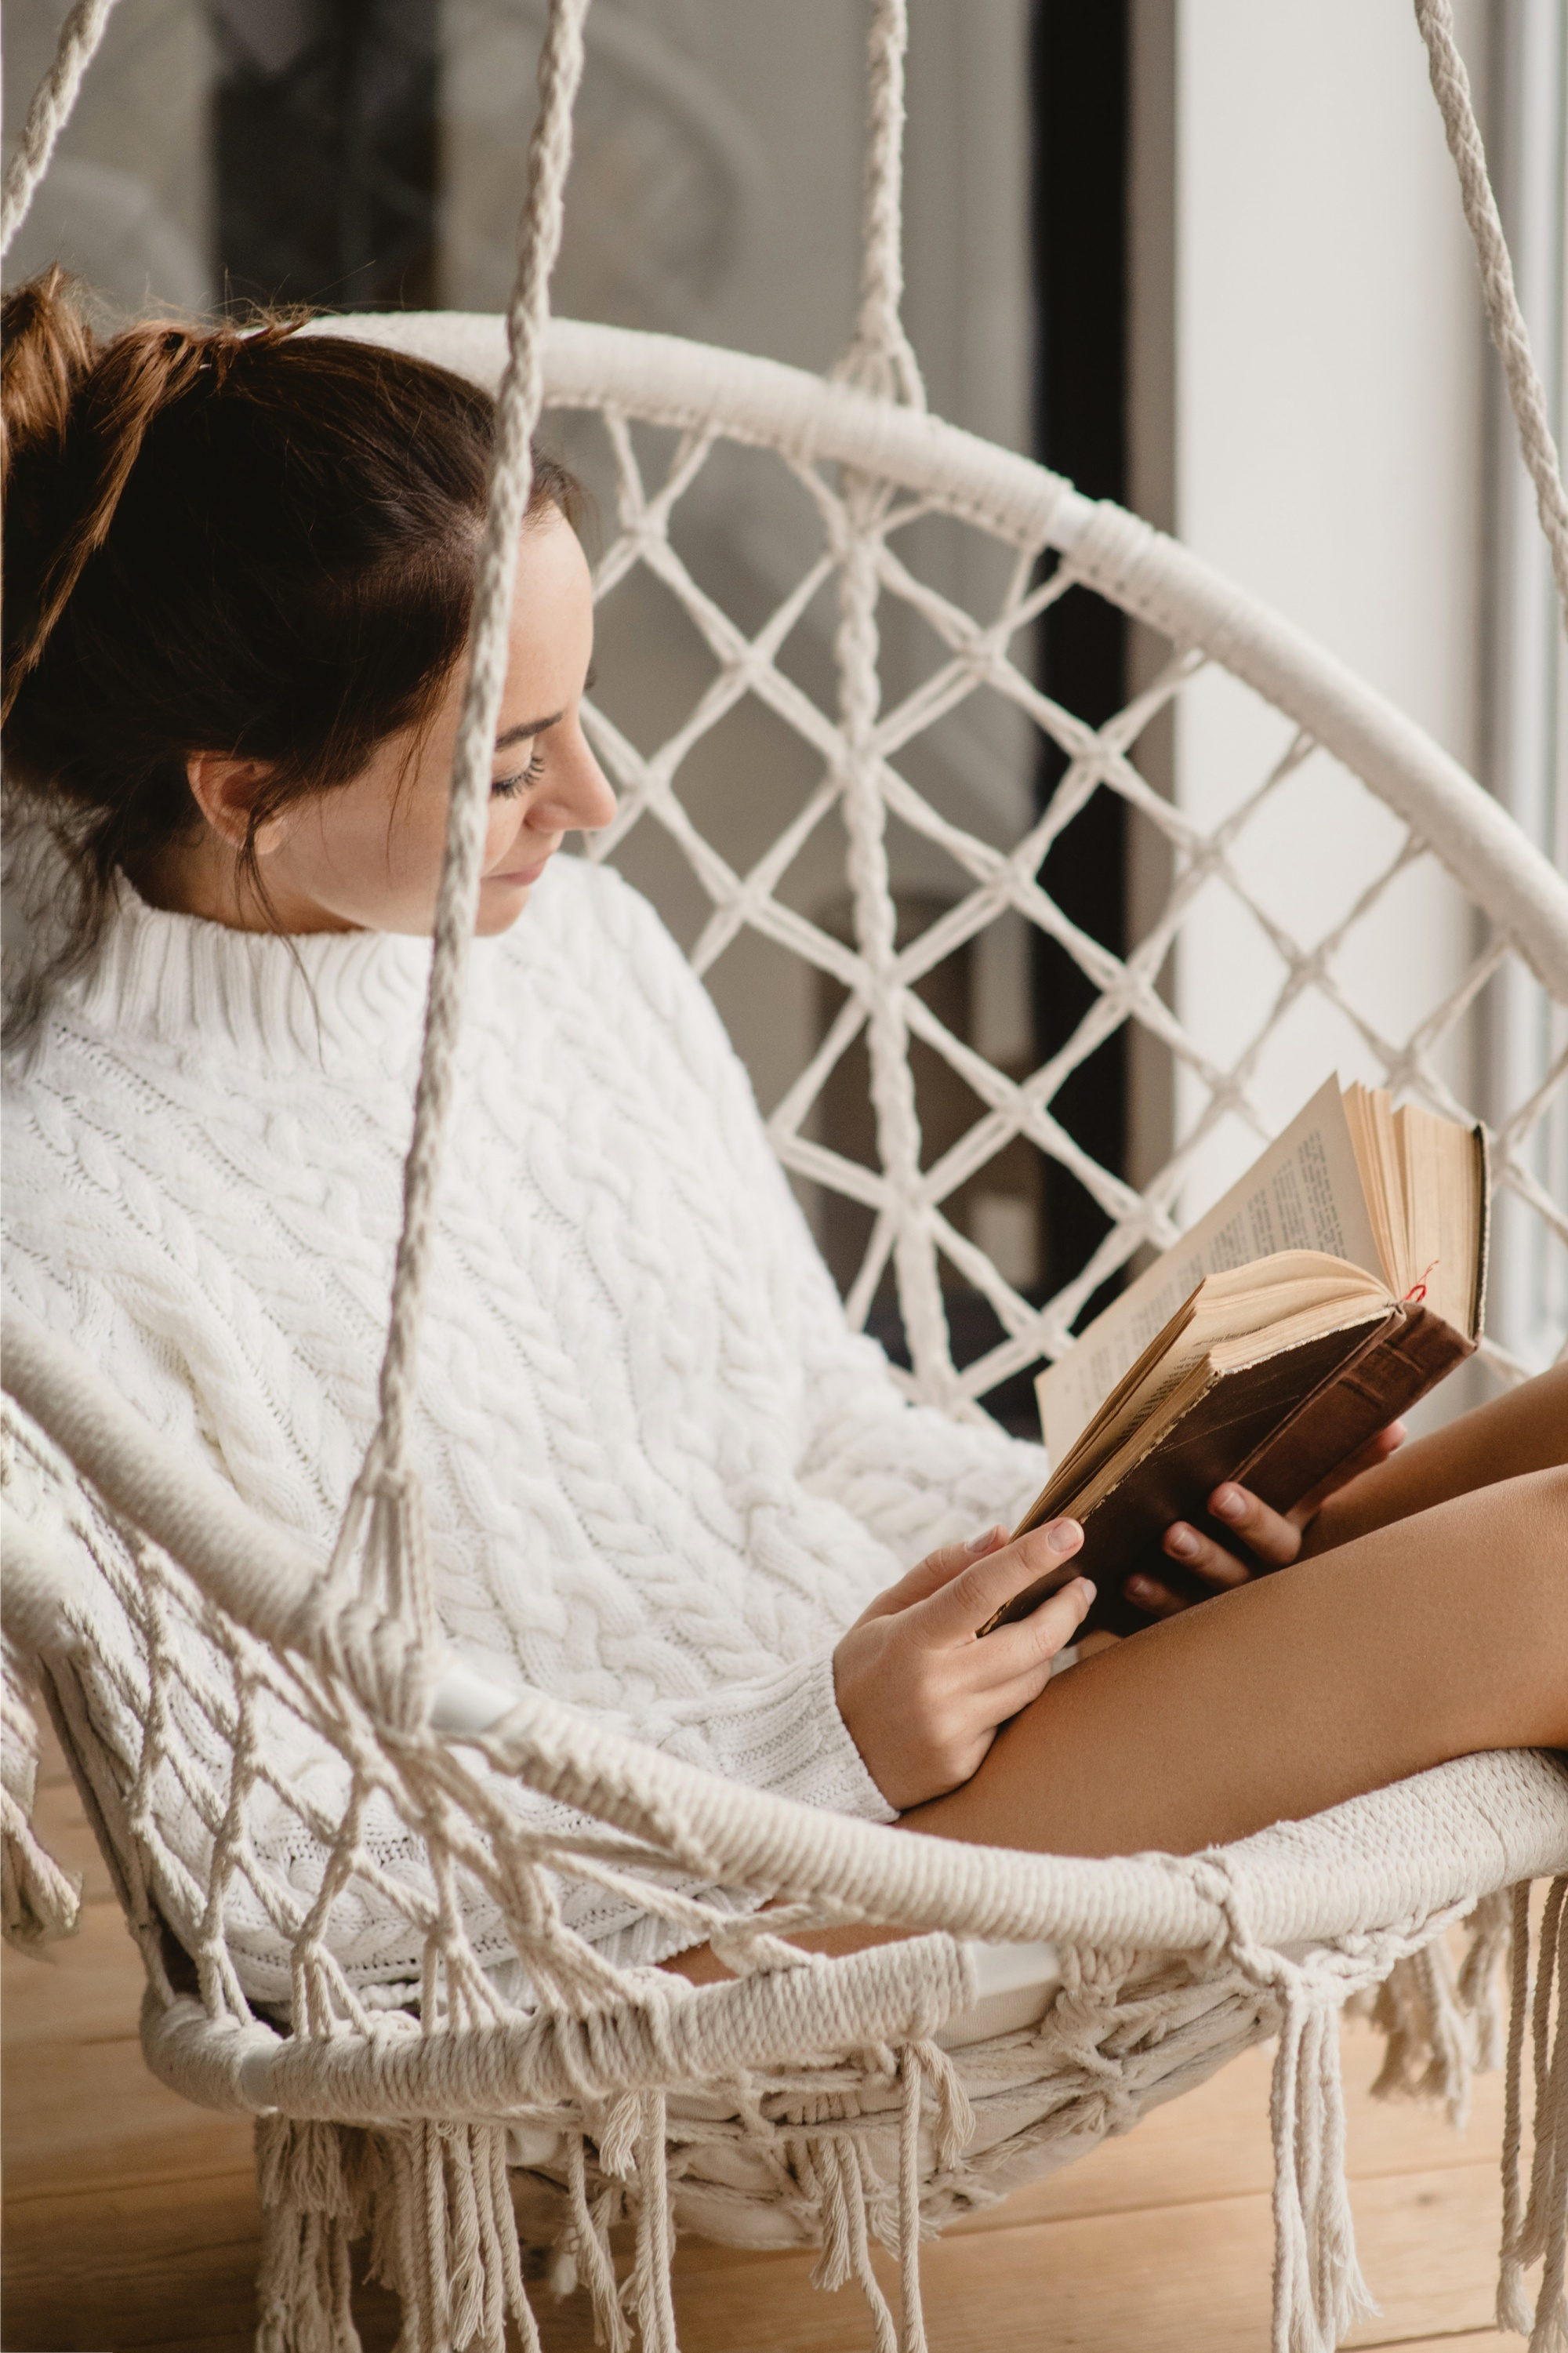 self-care and self-love, woman in cableknit white sweater reading in hammock swing